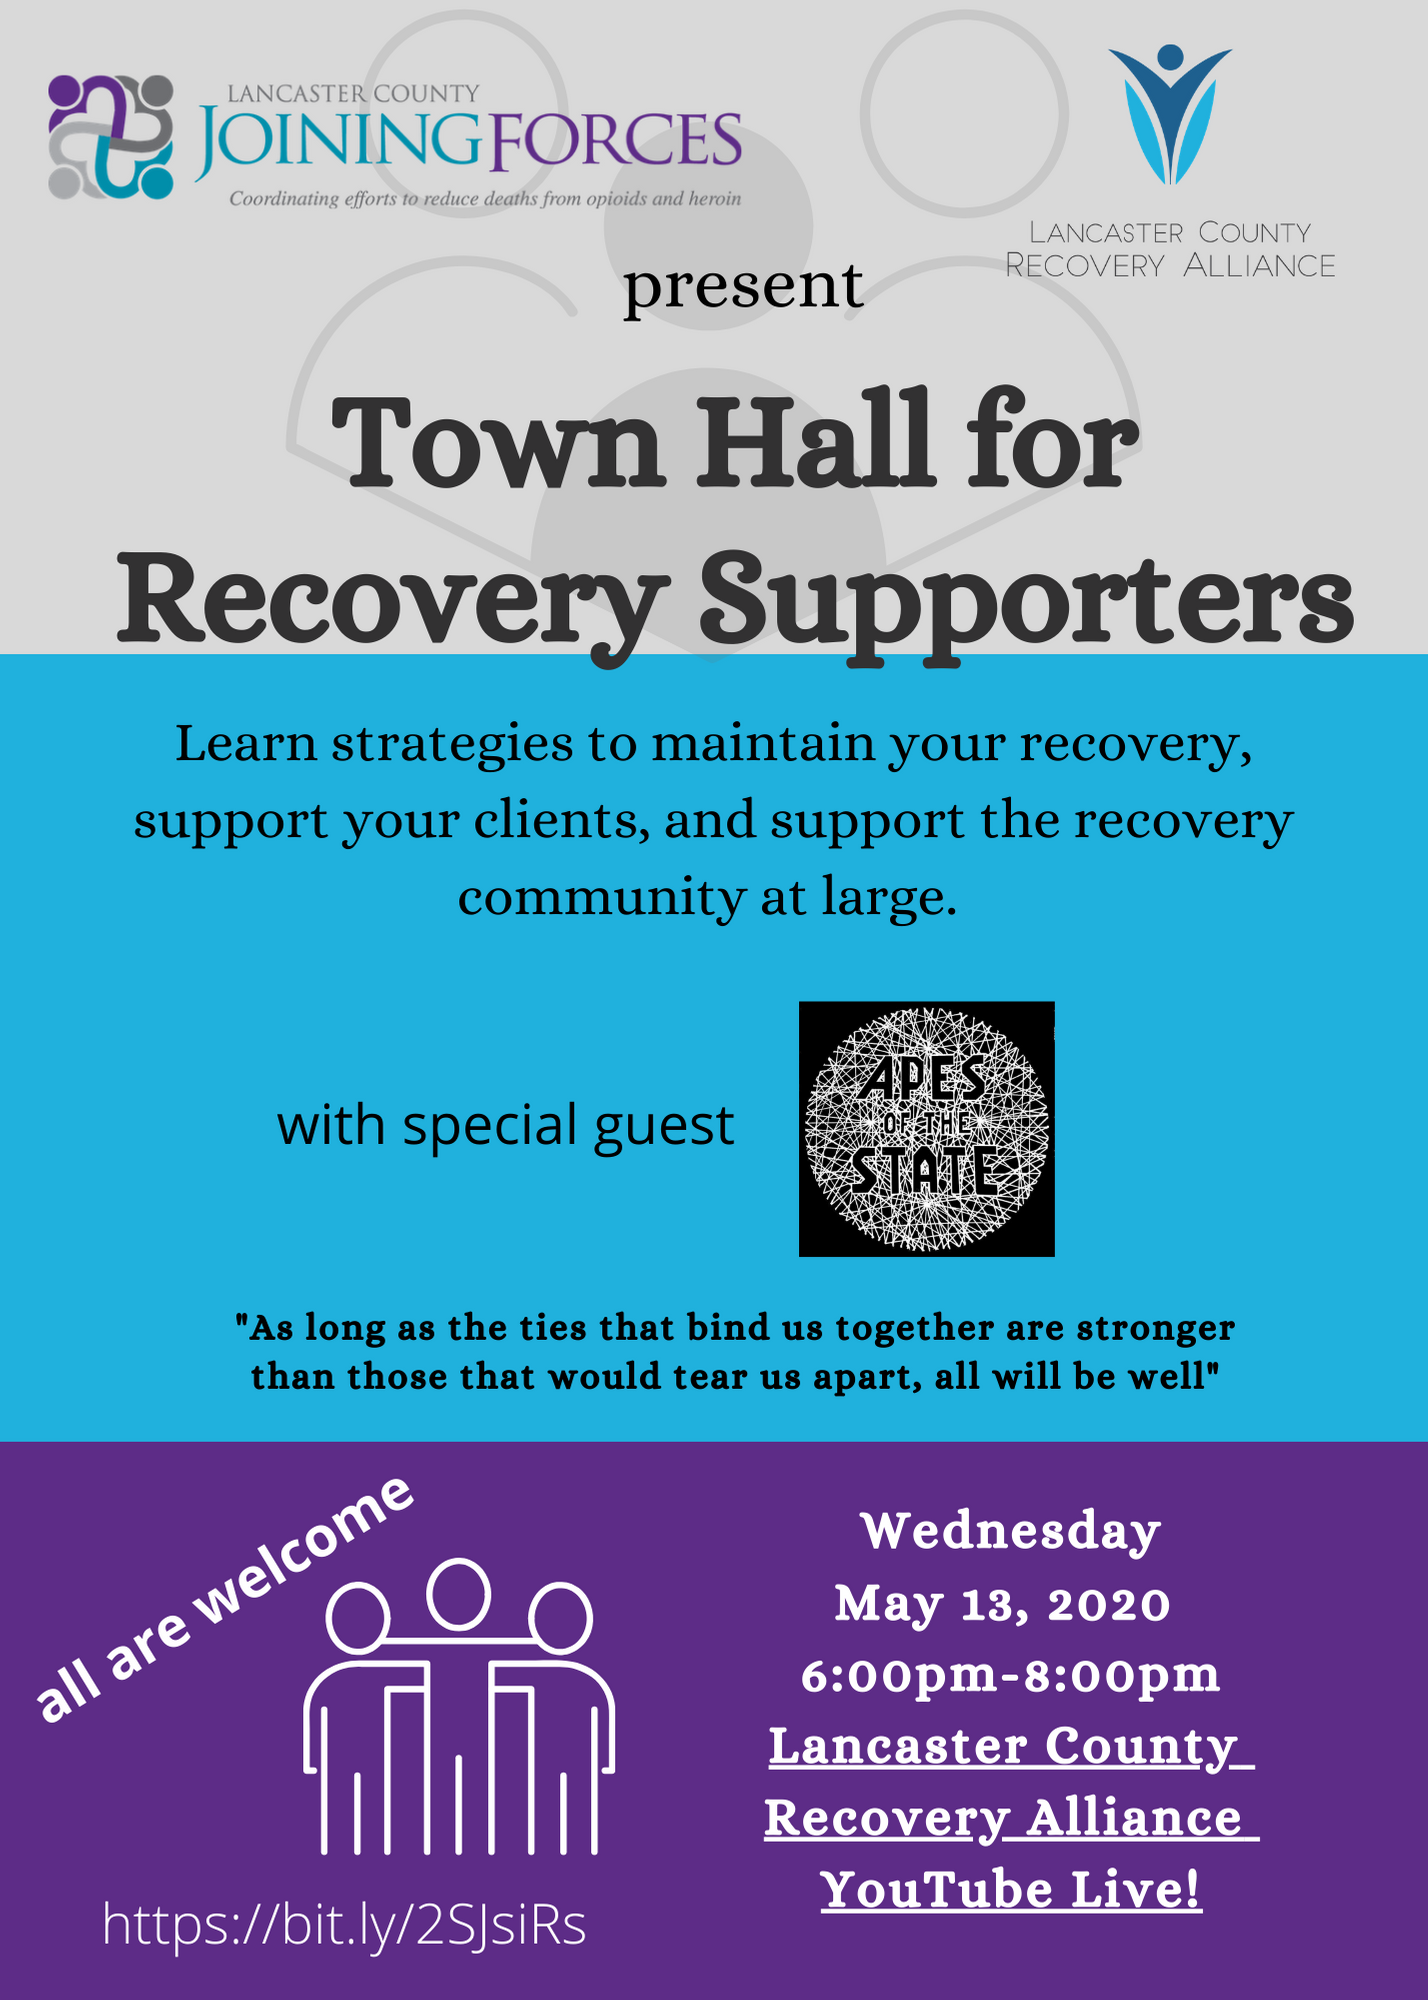 JF_LCRA_Town_Hall_May2020_v3 (003)